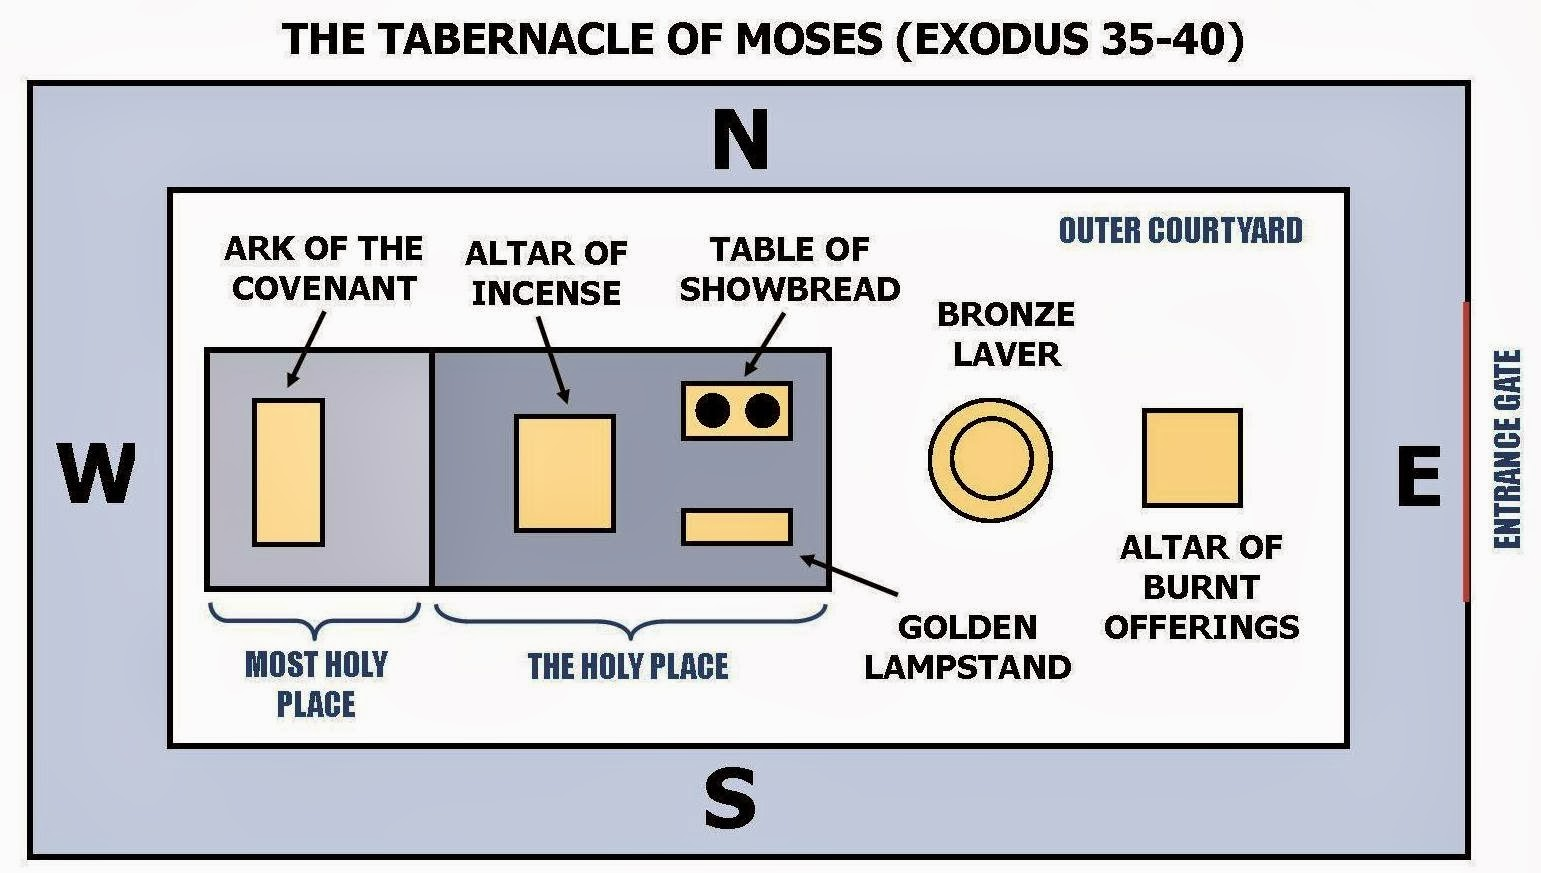 The Tabernacle Of Moses Curtains Lucia 39s Blog The Law And The Wildernes God 39s Tabernacle